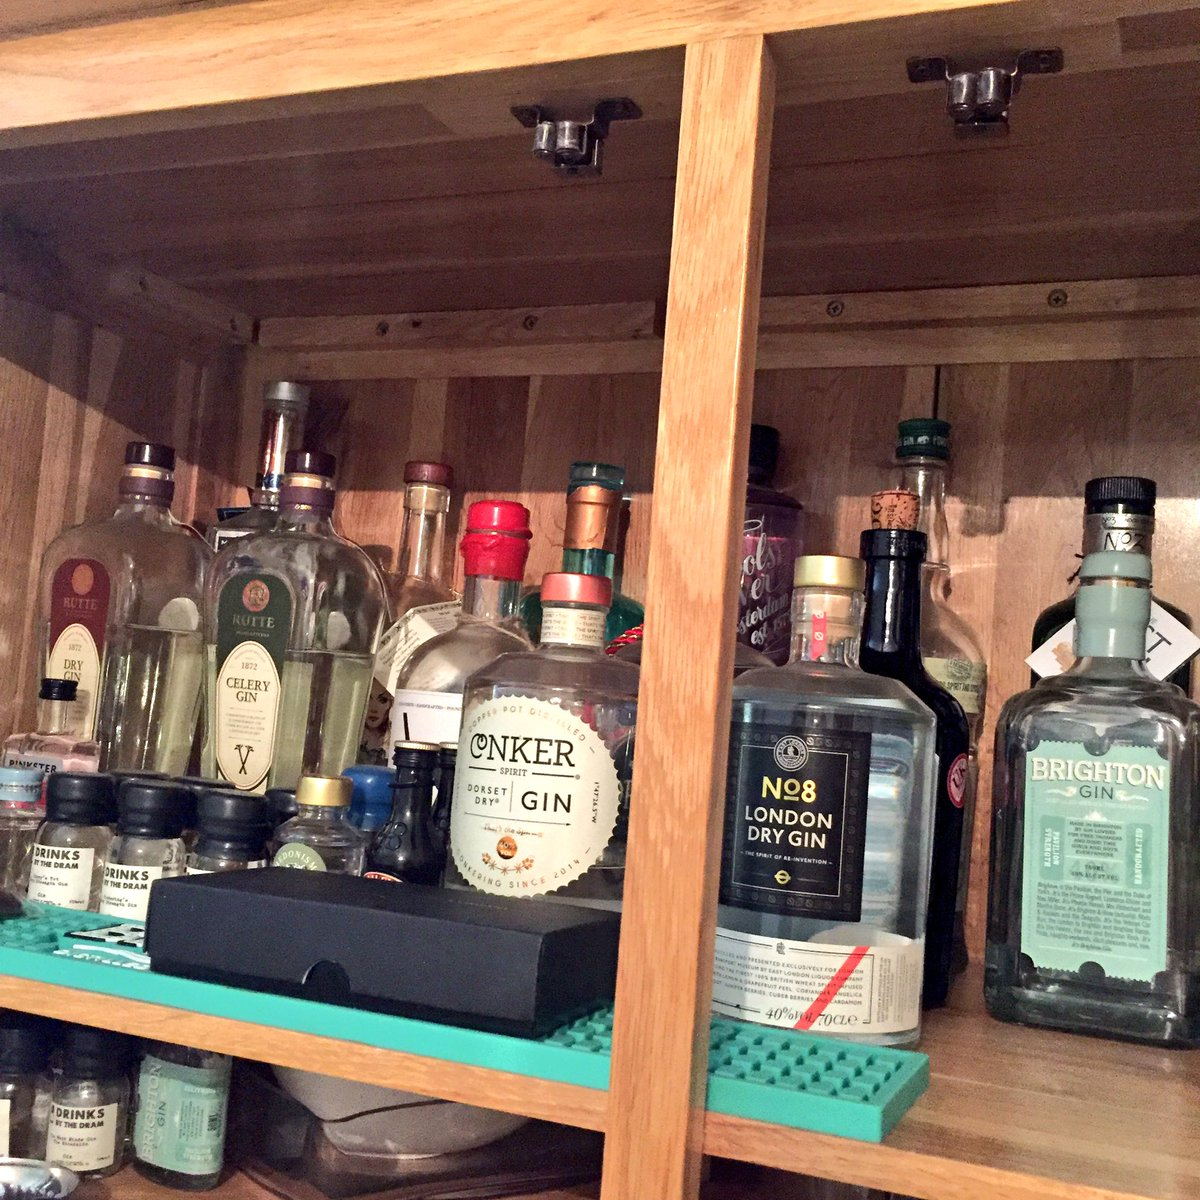 Like I said Gin is my thing ... this is my collection (rows of 3) ... there just so much choice! #gin https://t.co/EJBMogqNoE